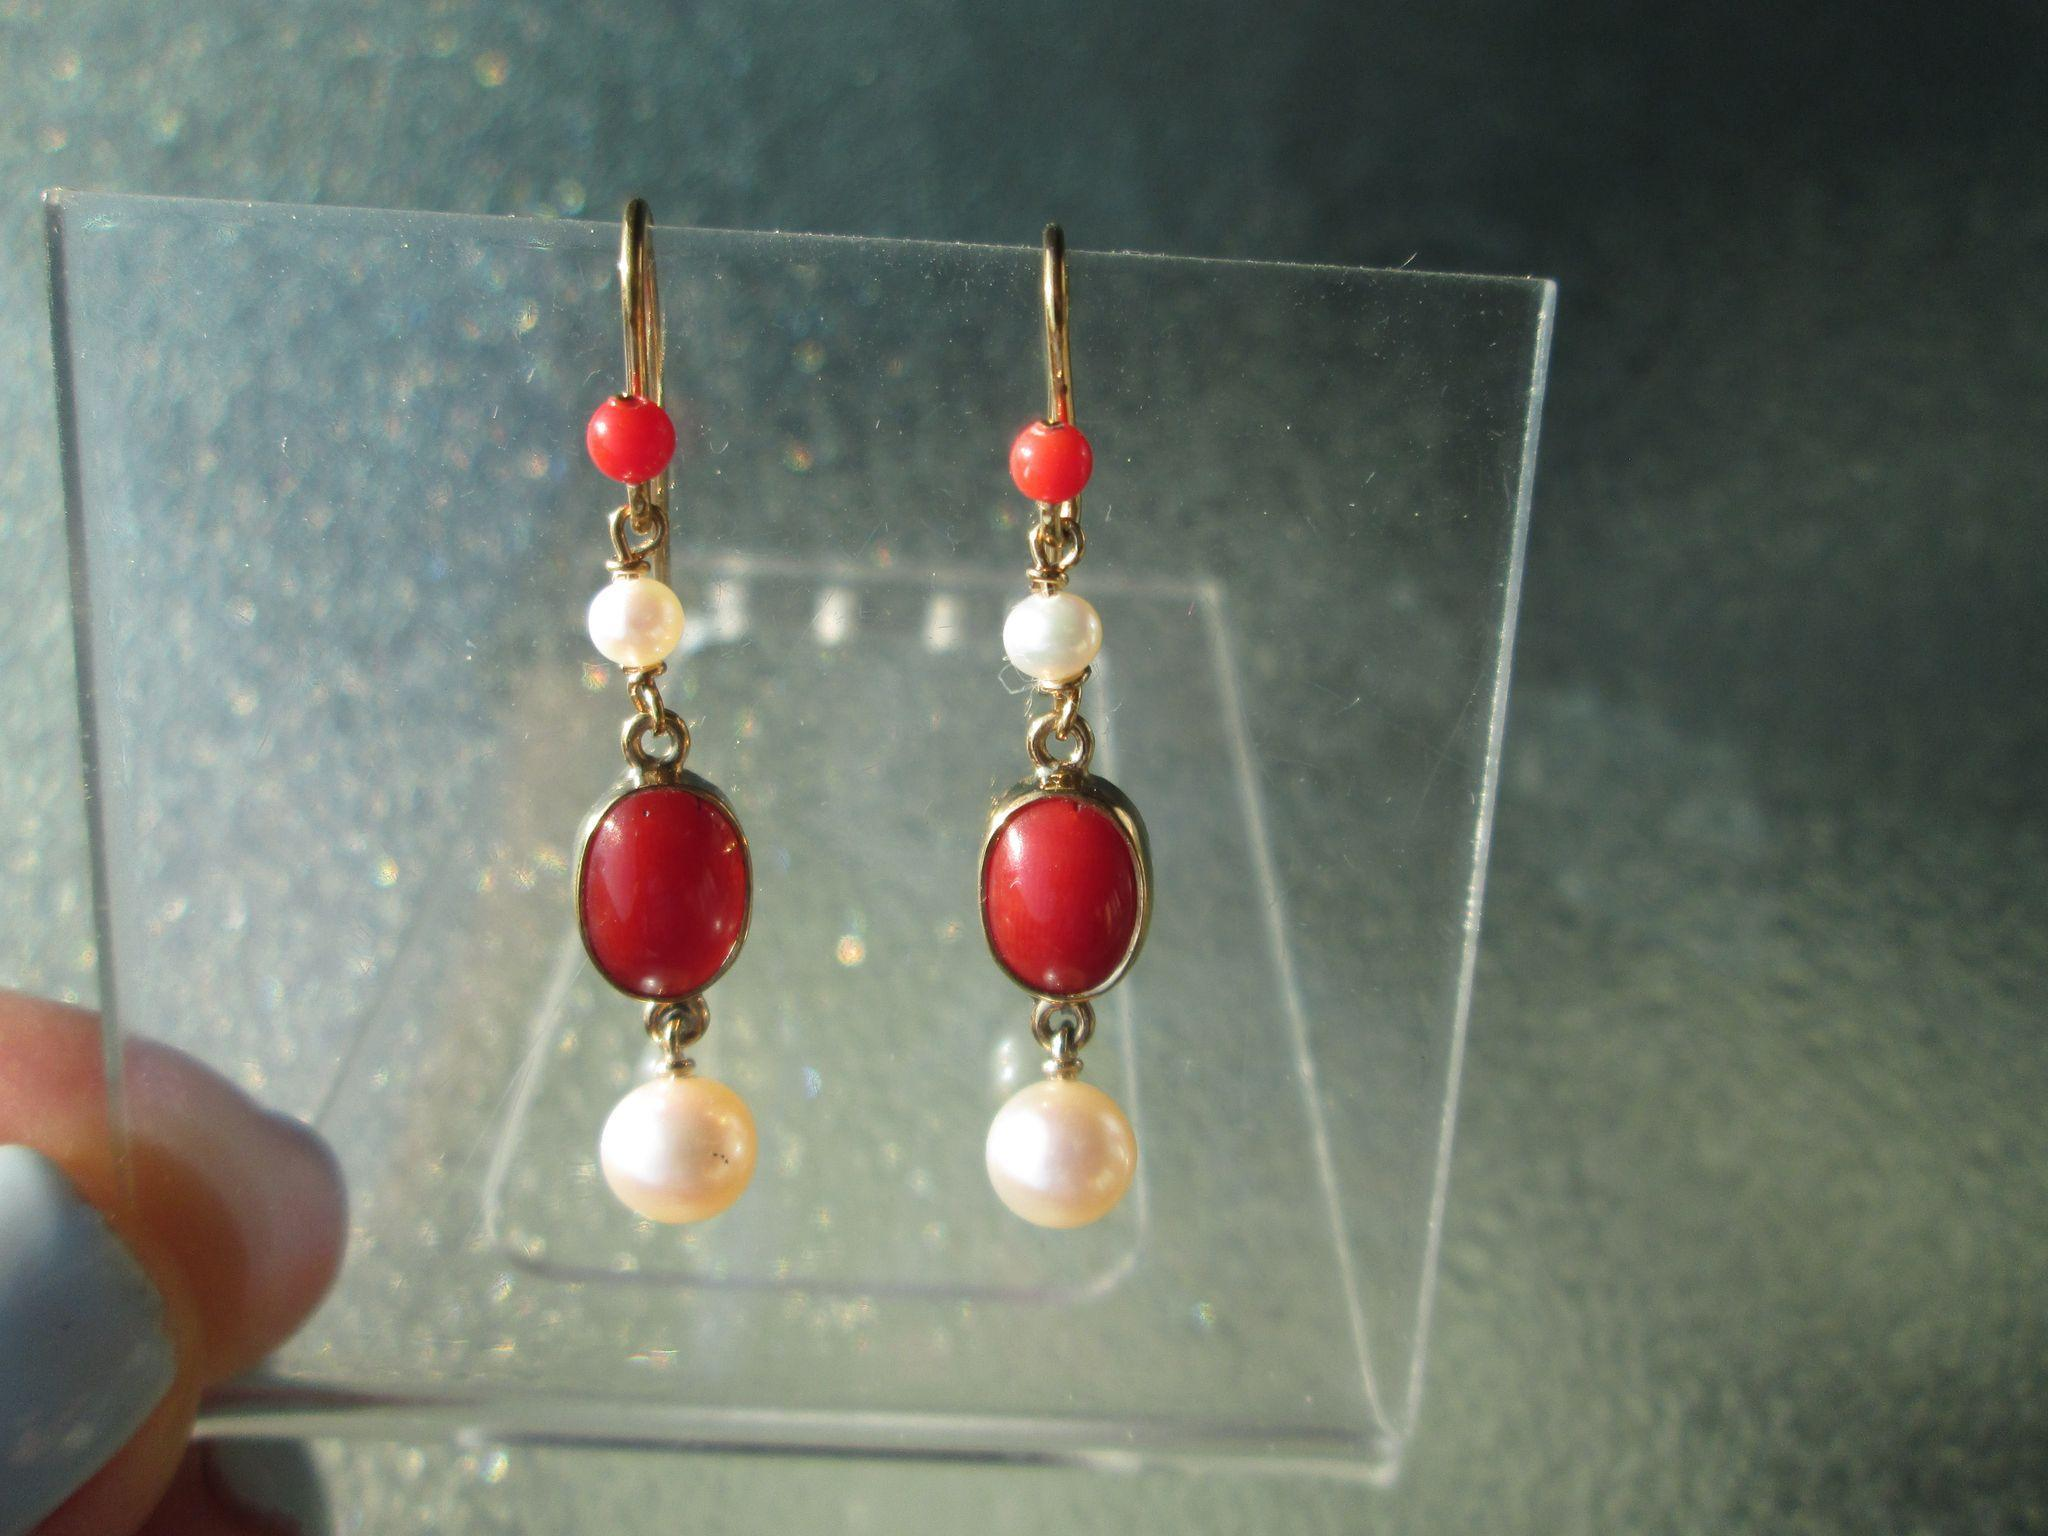 9kt Yellow Gold Vibrant Red Corals and Freshwater Pearl Earring